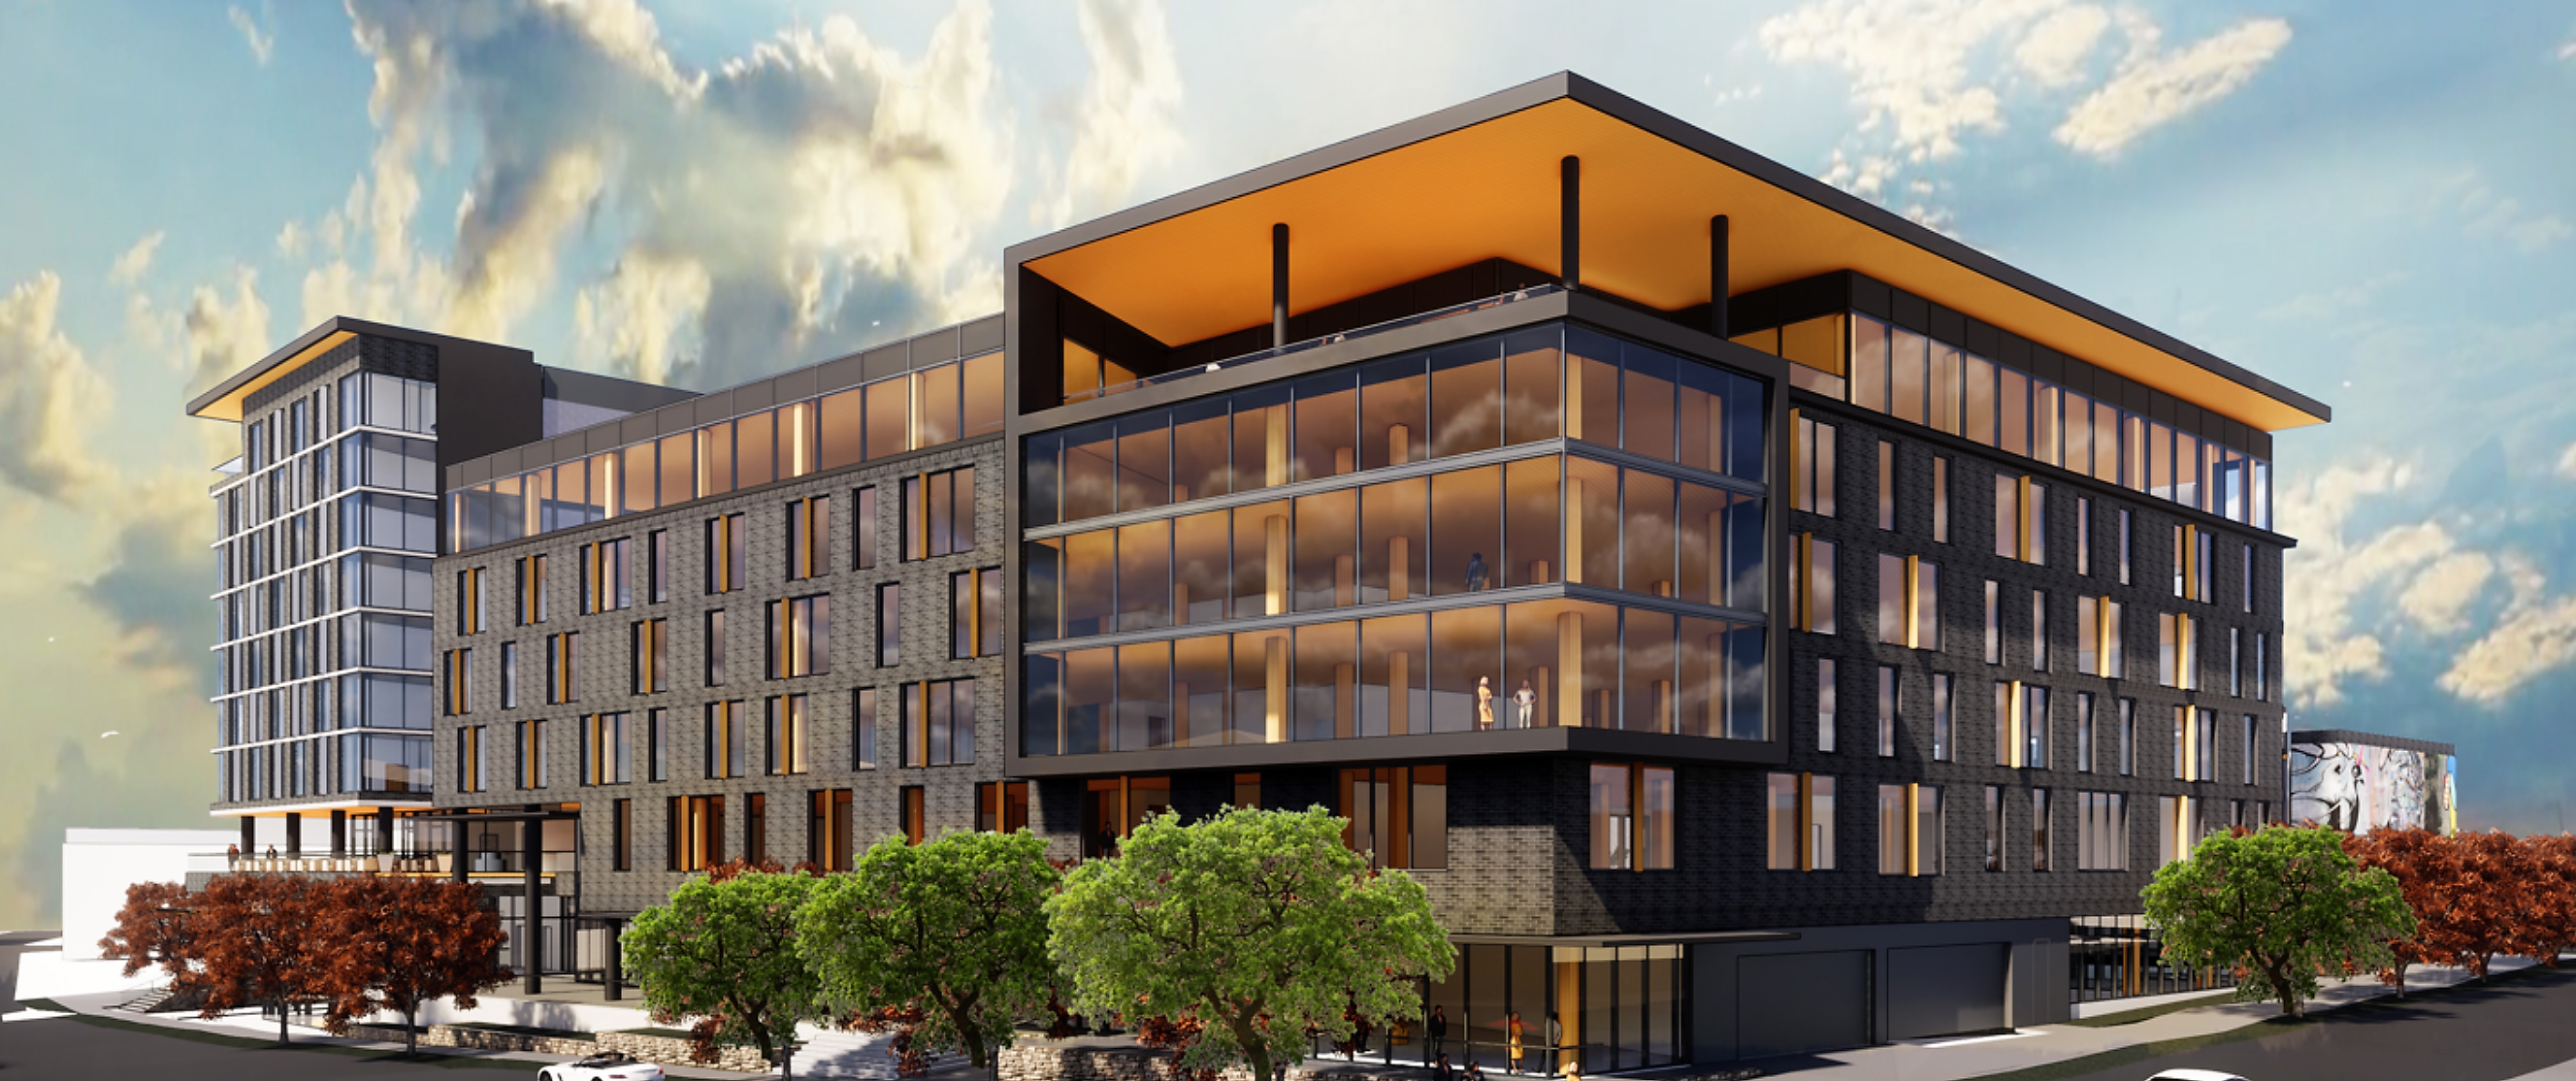 a rendering of the upcoming complex